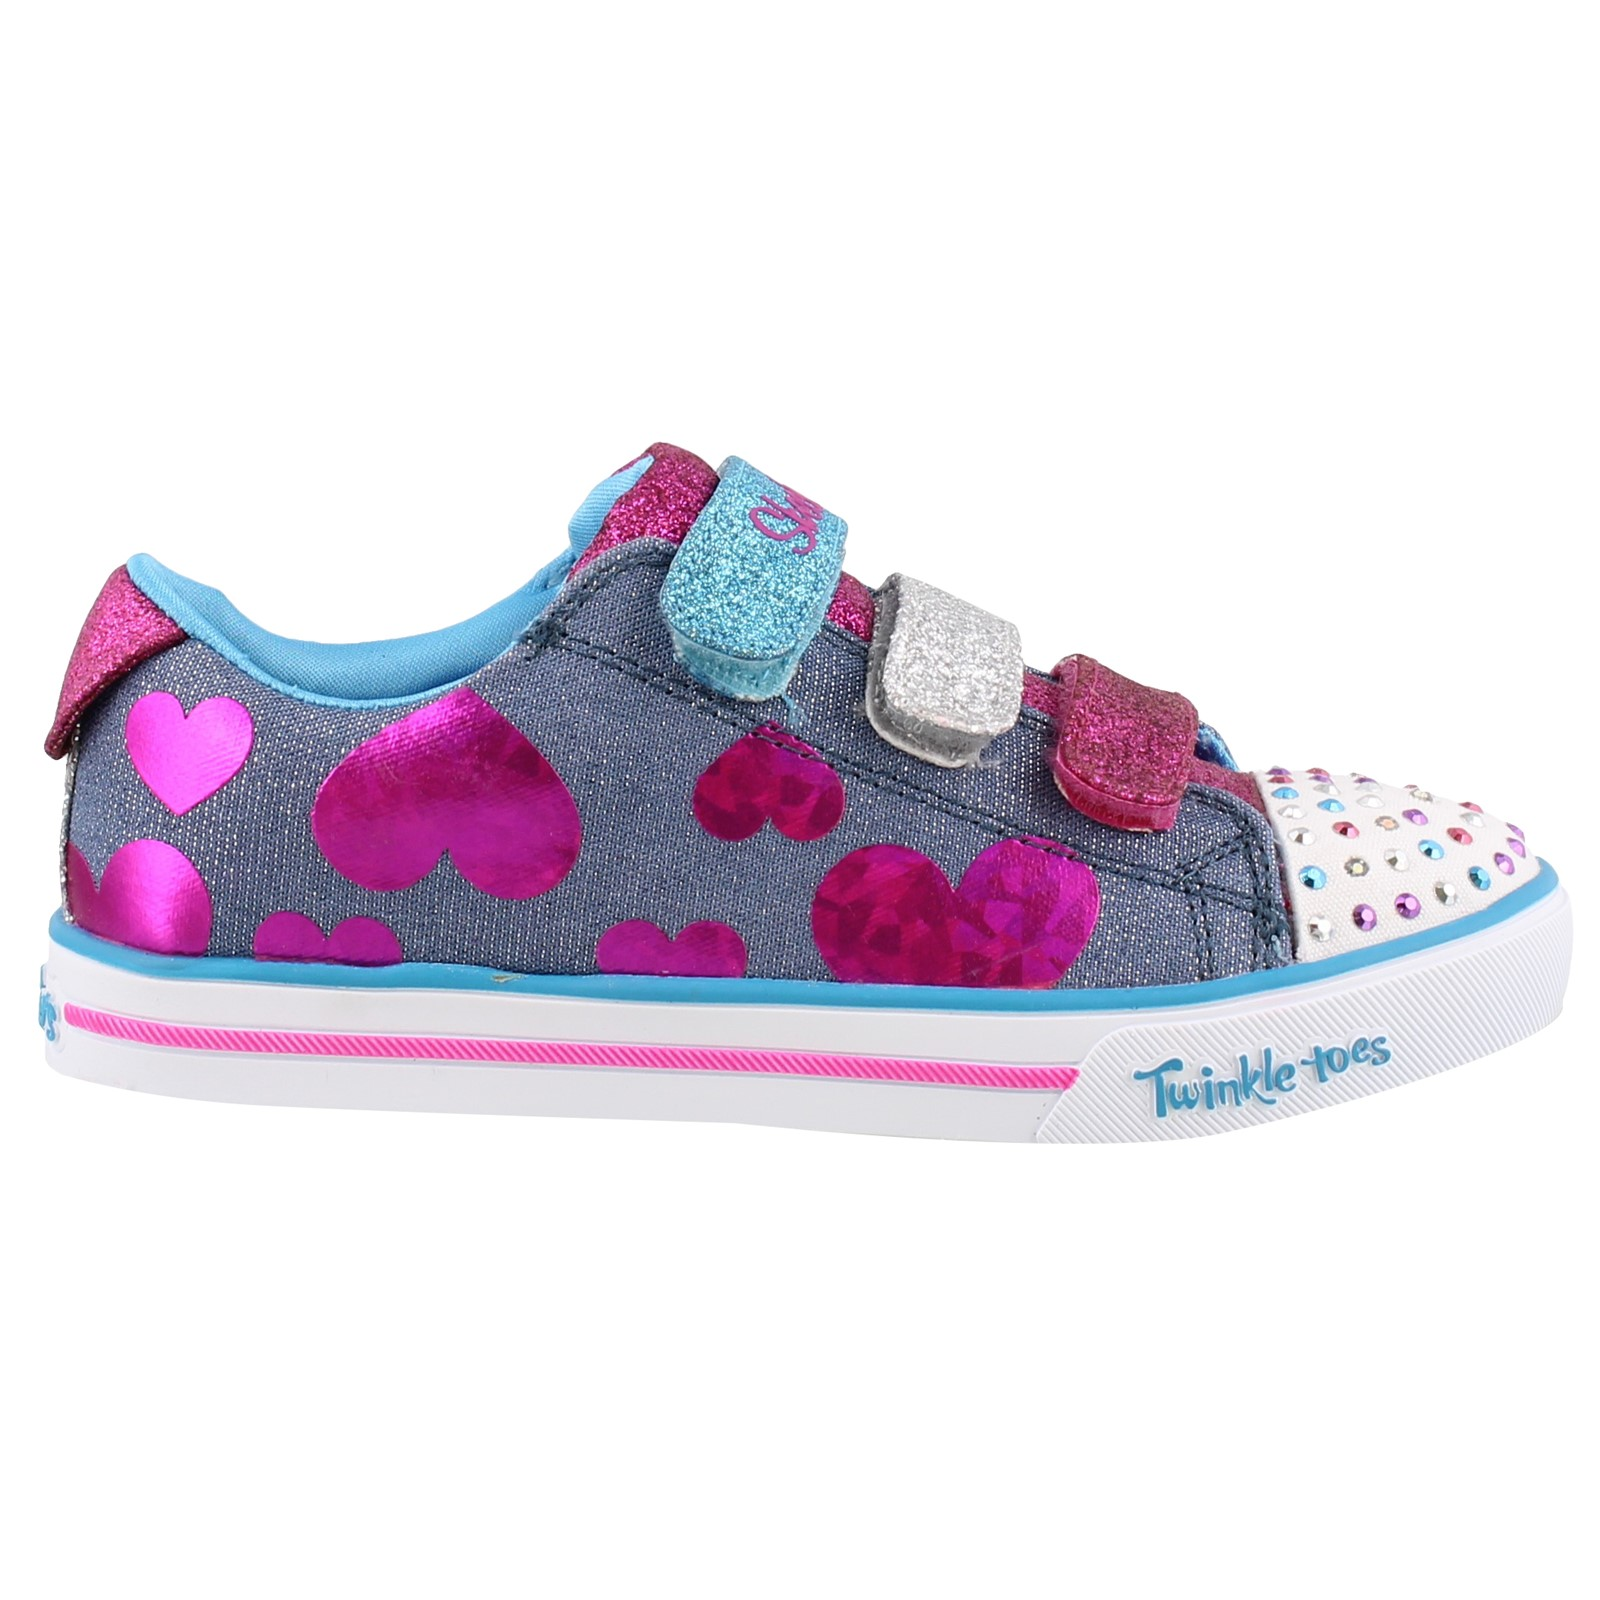 Kid's SKECHERS GIRLS, SPARKLE LITE FLUTTER FAB